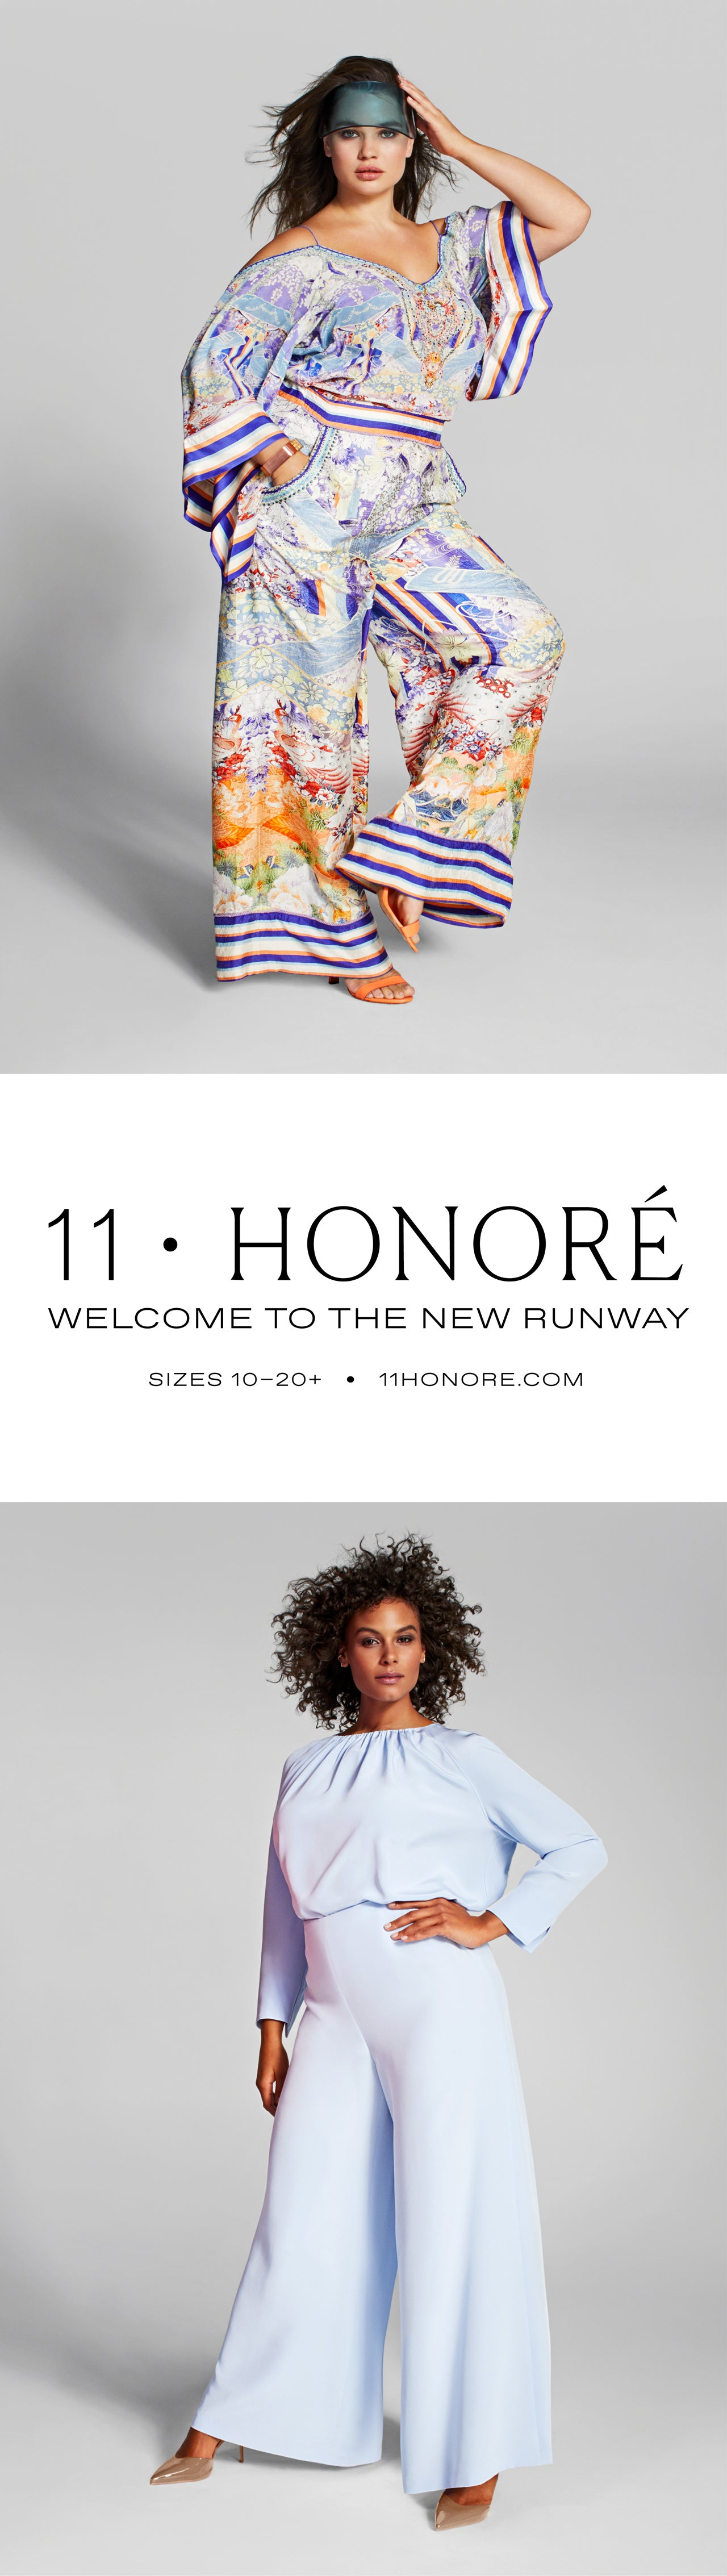 11 Honoré, welcome to the new runway. Sizes 10-20+